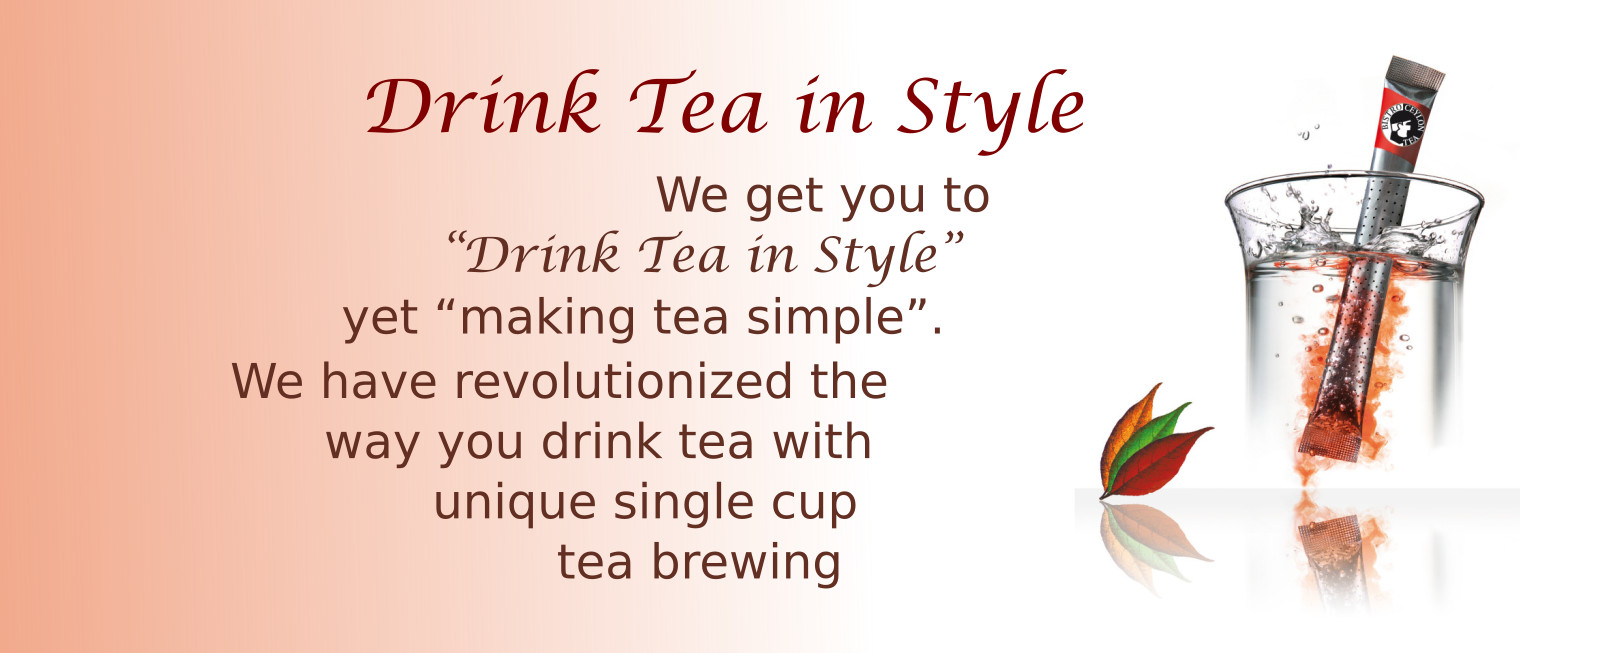 Drink tea in style